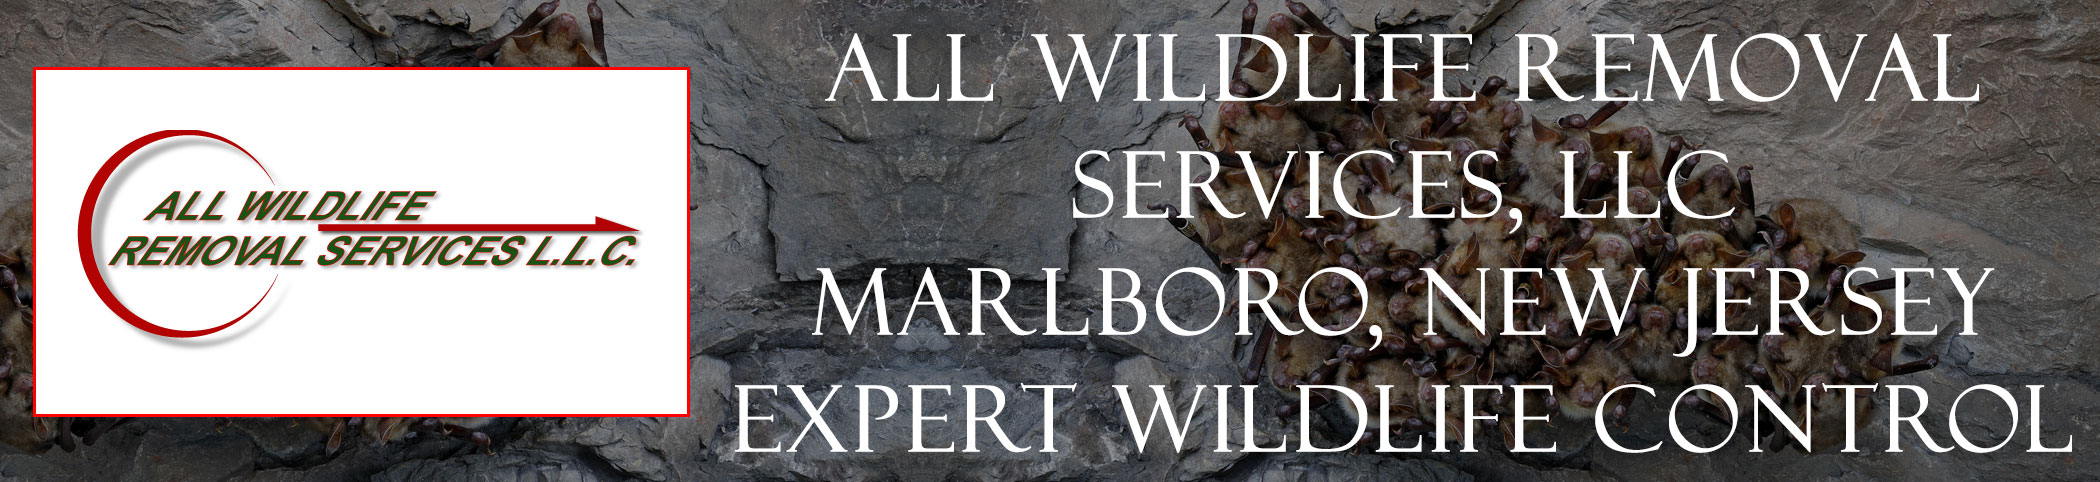 all-wildlife-removal-services-Marlboro-new-jersey-header